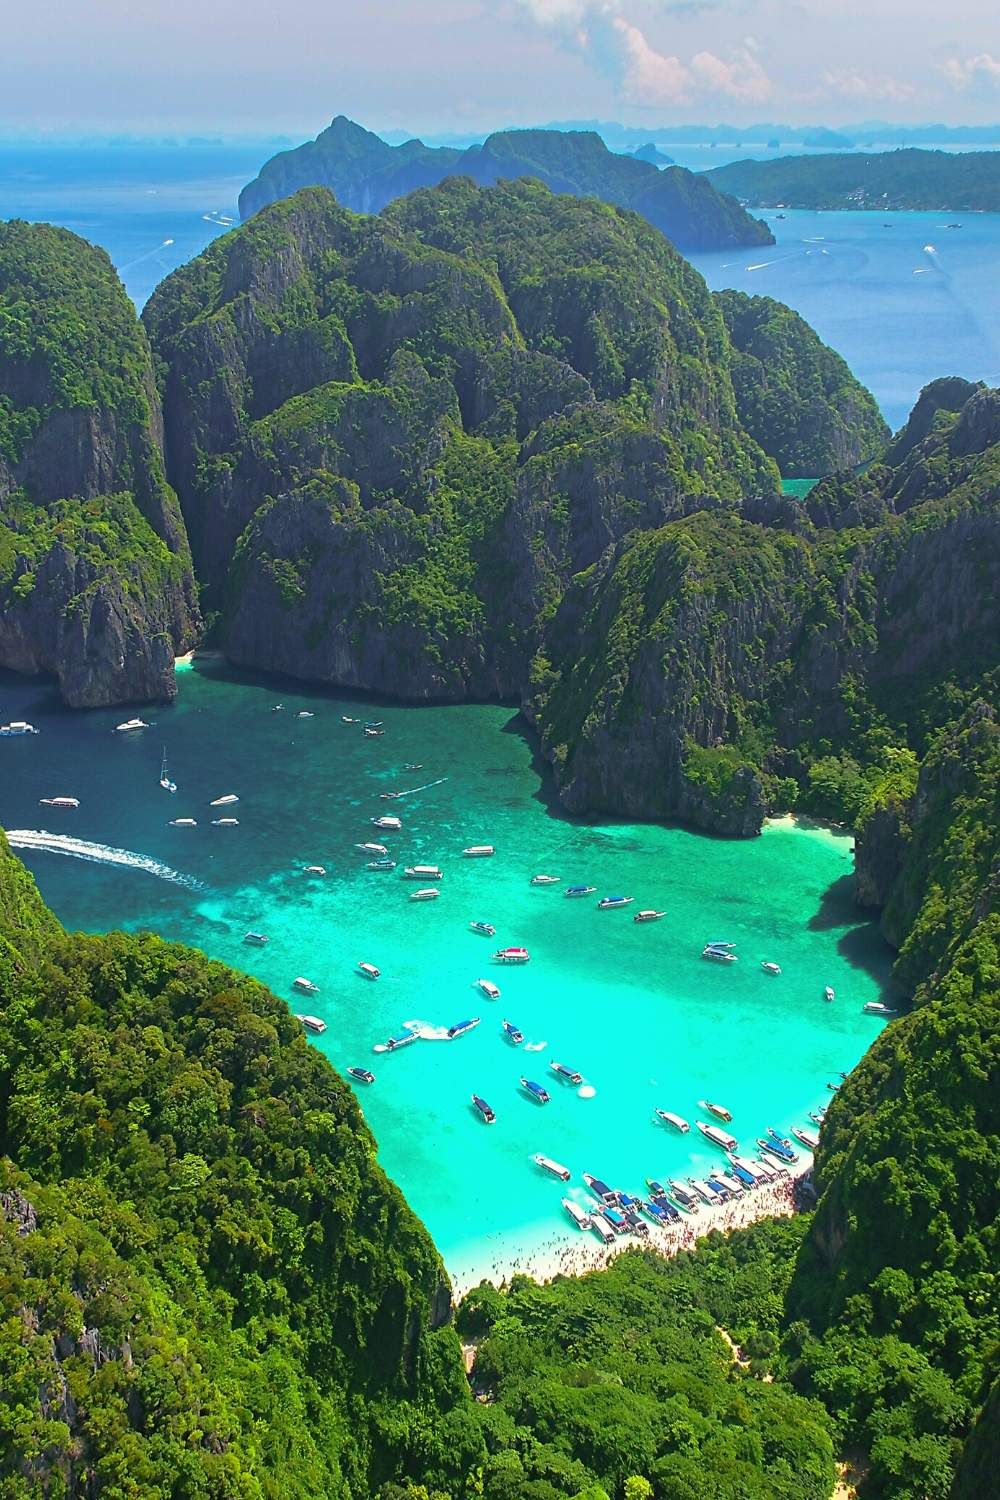 Tips on everything you need to know to plan a trip to Phuket Thailand! Things to do, places to visit, where to stay, what to pack for Phuket and more! #itsallbee #traveltips #asia #phiphiisland phuket outfit ideas #trip #adventure #vacation #beach